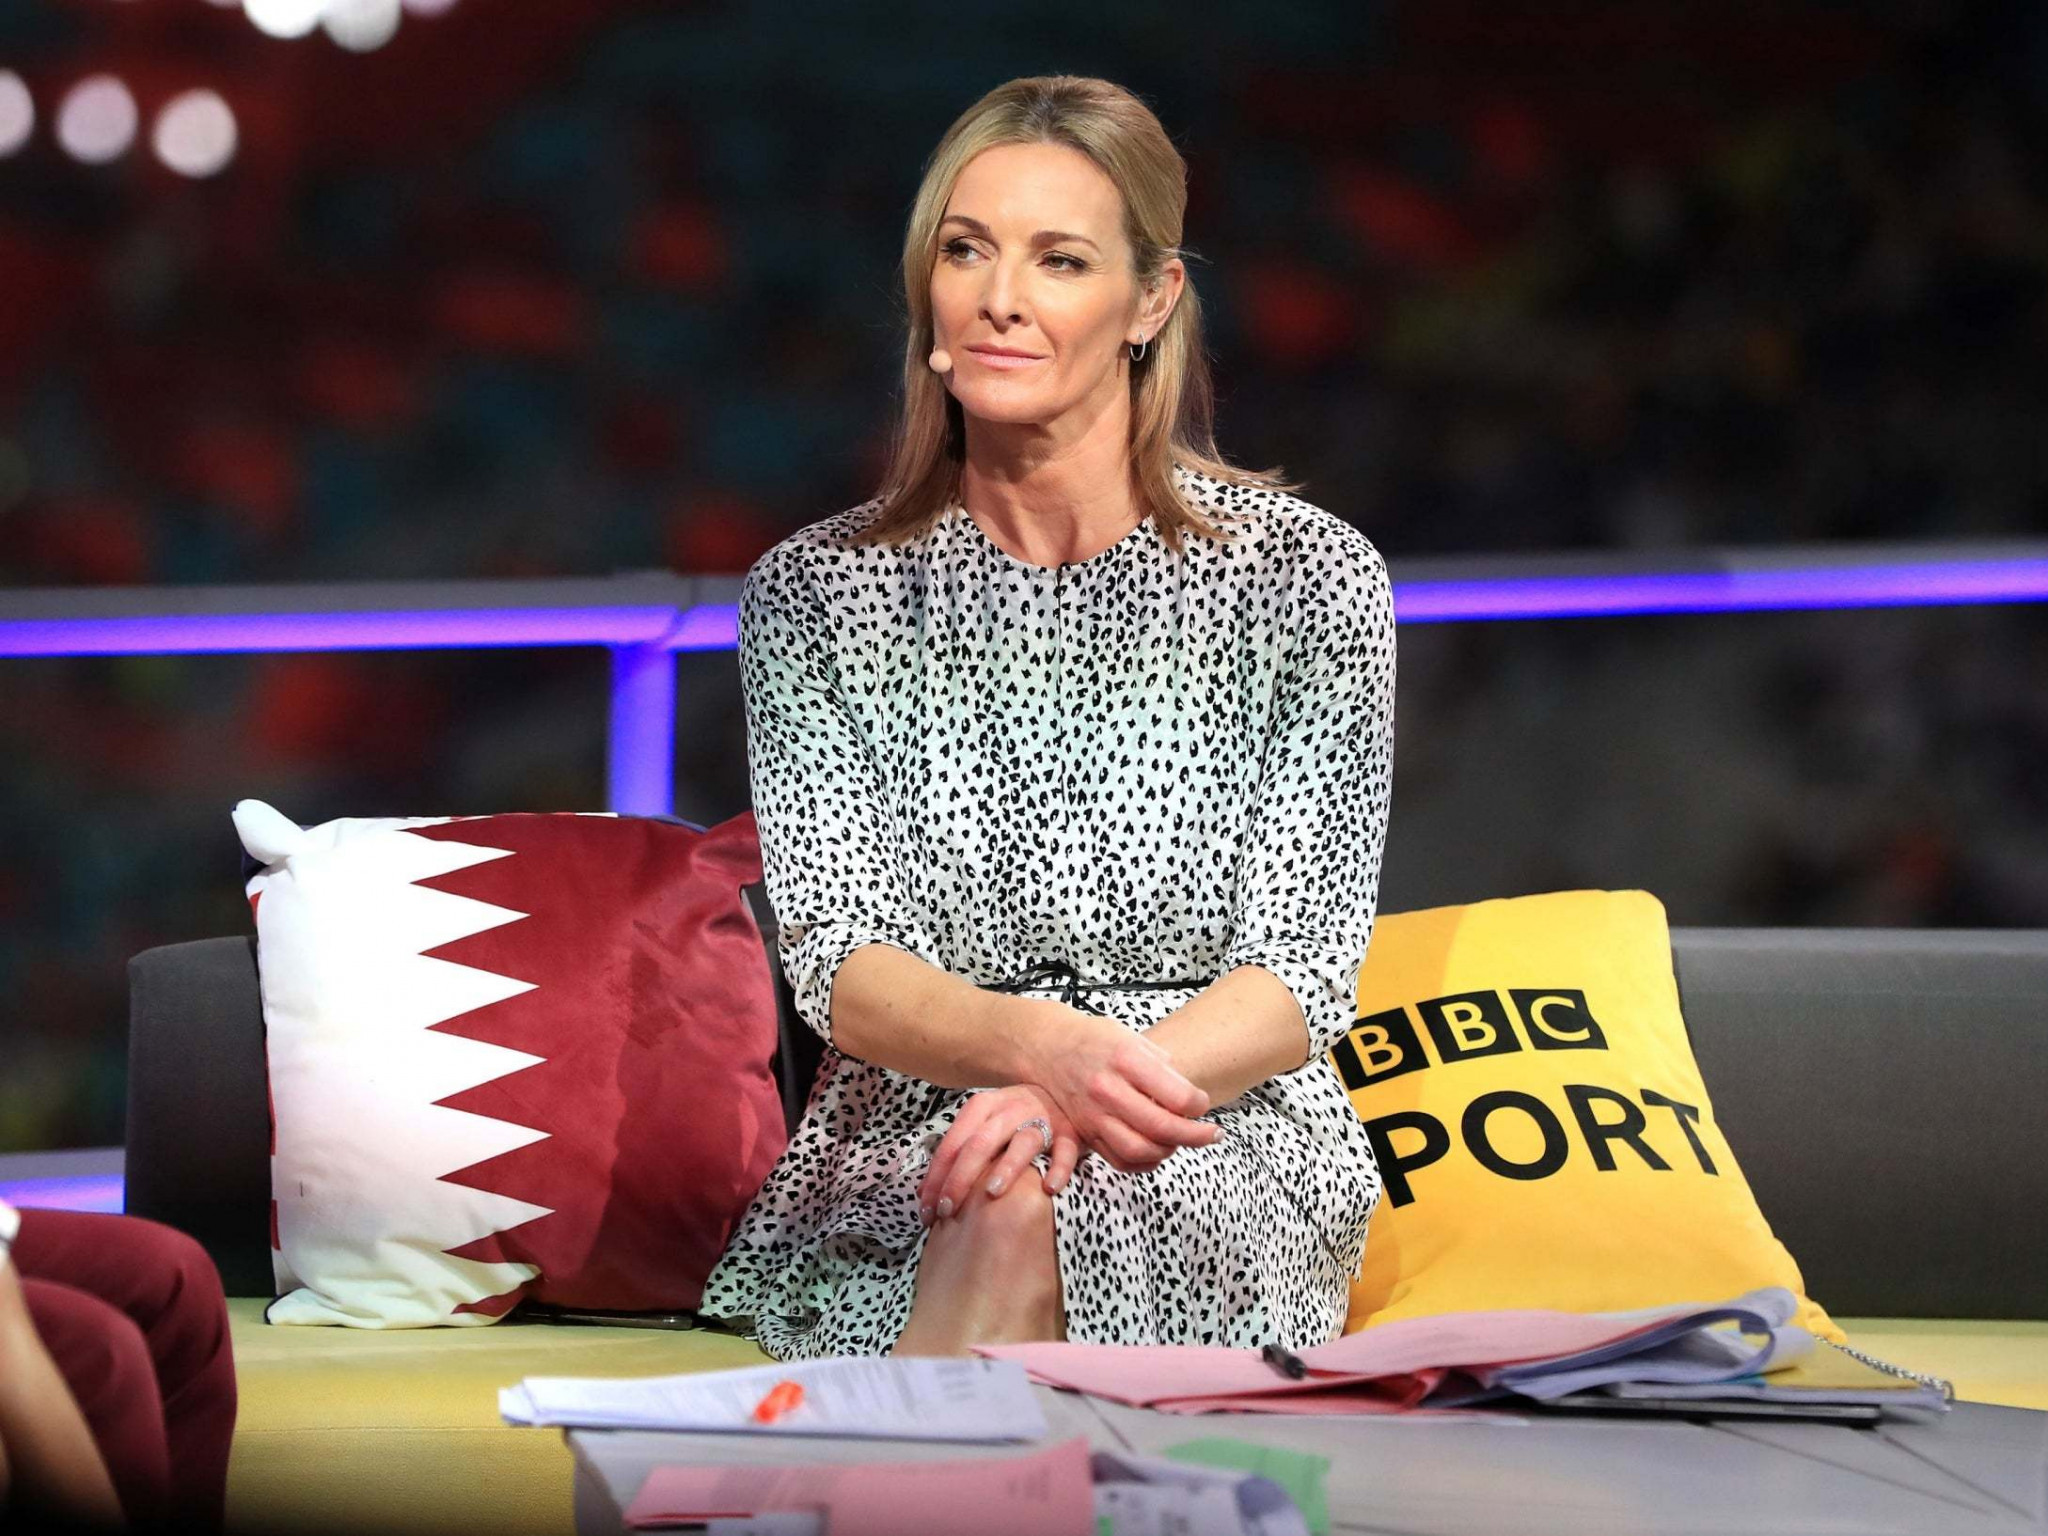 BBC presenter Gabby Logan was criticised by IAAF President Sebastian Coe for drawing attention to the poor crowds during the early stages of the World Championships in Doha ©BBC